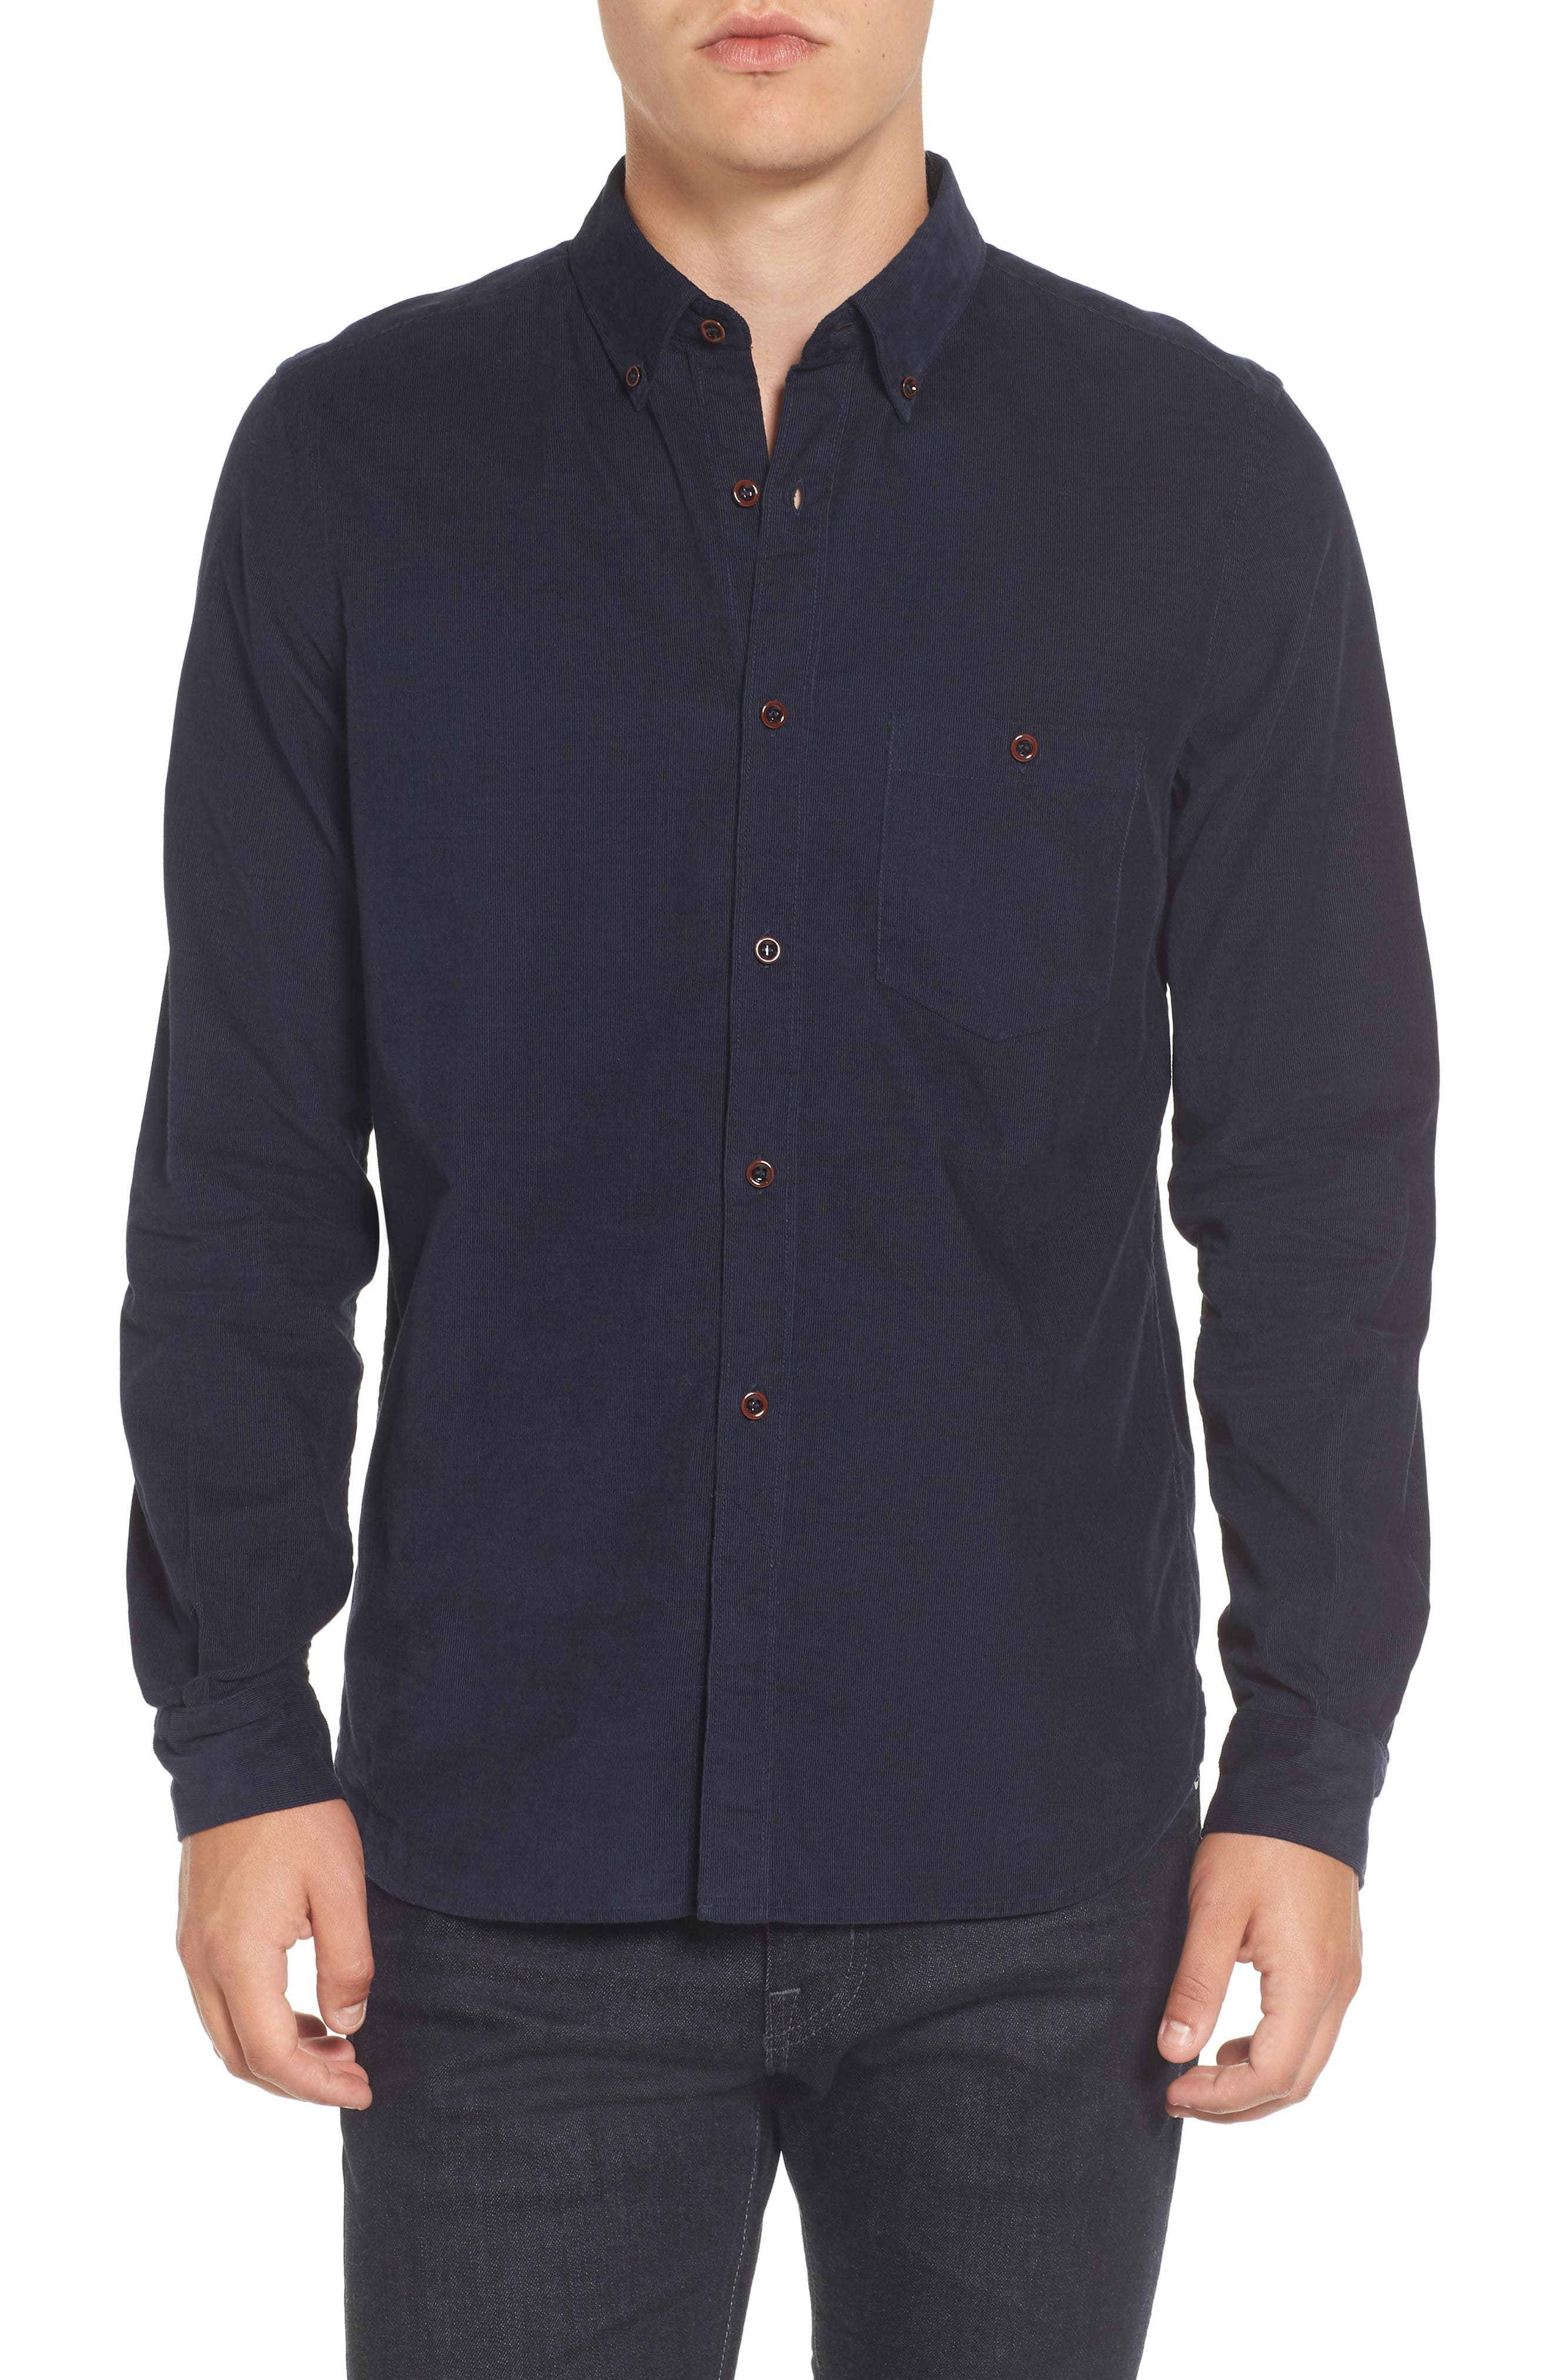 Alternate Image 1 Selected - French Connection Corduroy Sport Shirt